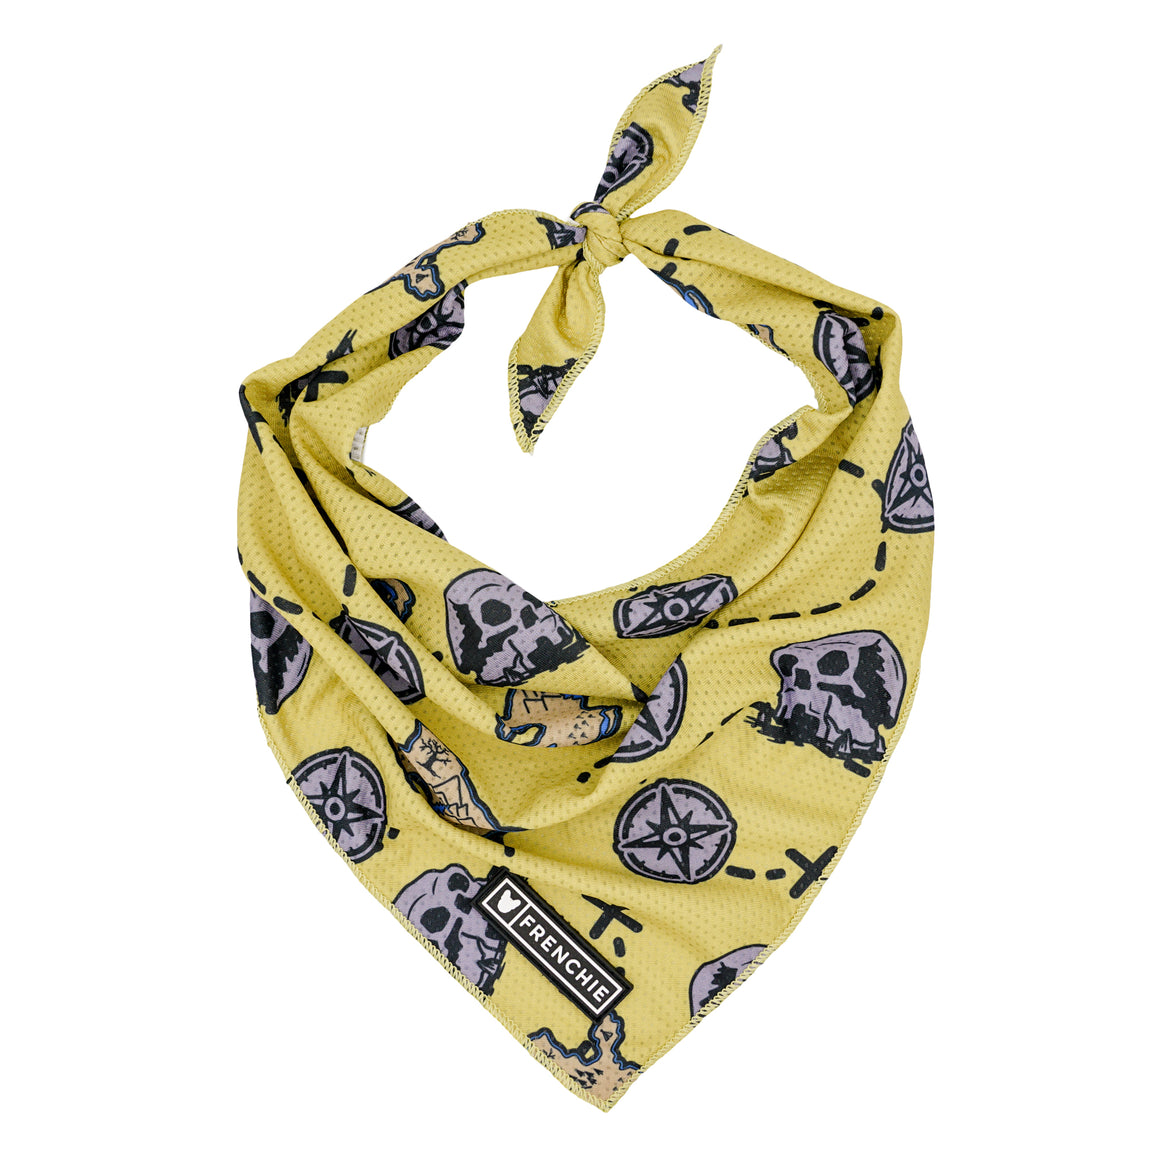 Frenchie Cooling Bandana - Pirate's Cove - Frenchie Bulldog - Shop Harnesses for French Bulldogs - Shop French Bulldog Harness - Harnesses for Pugs